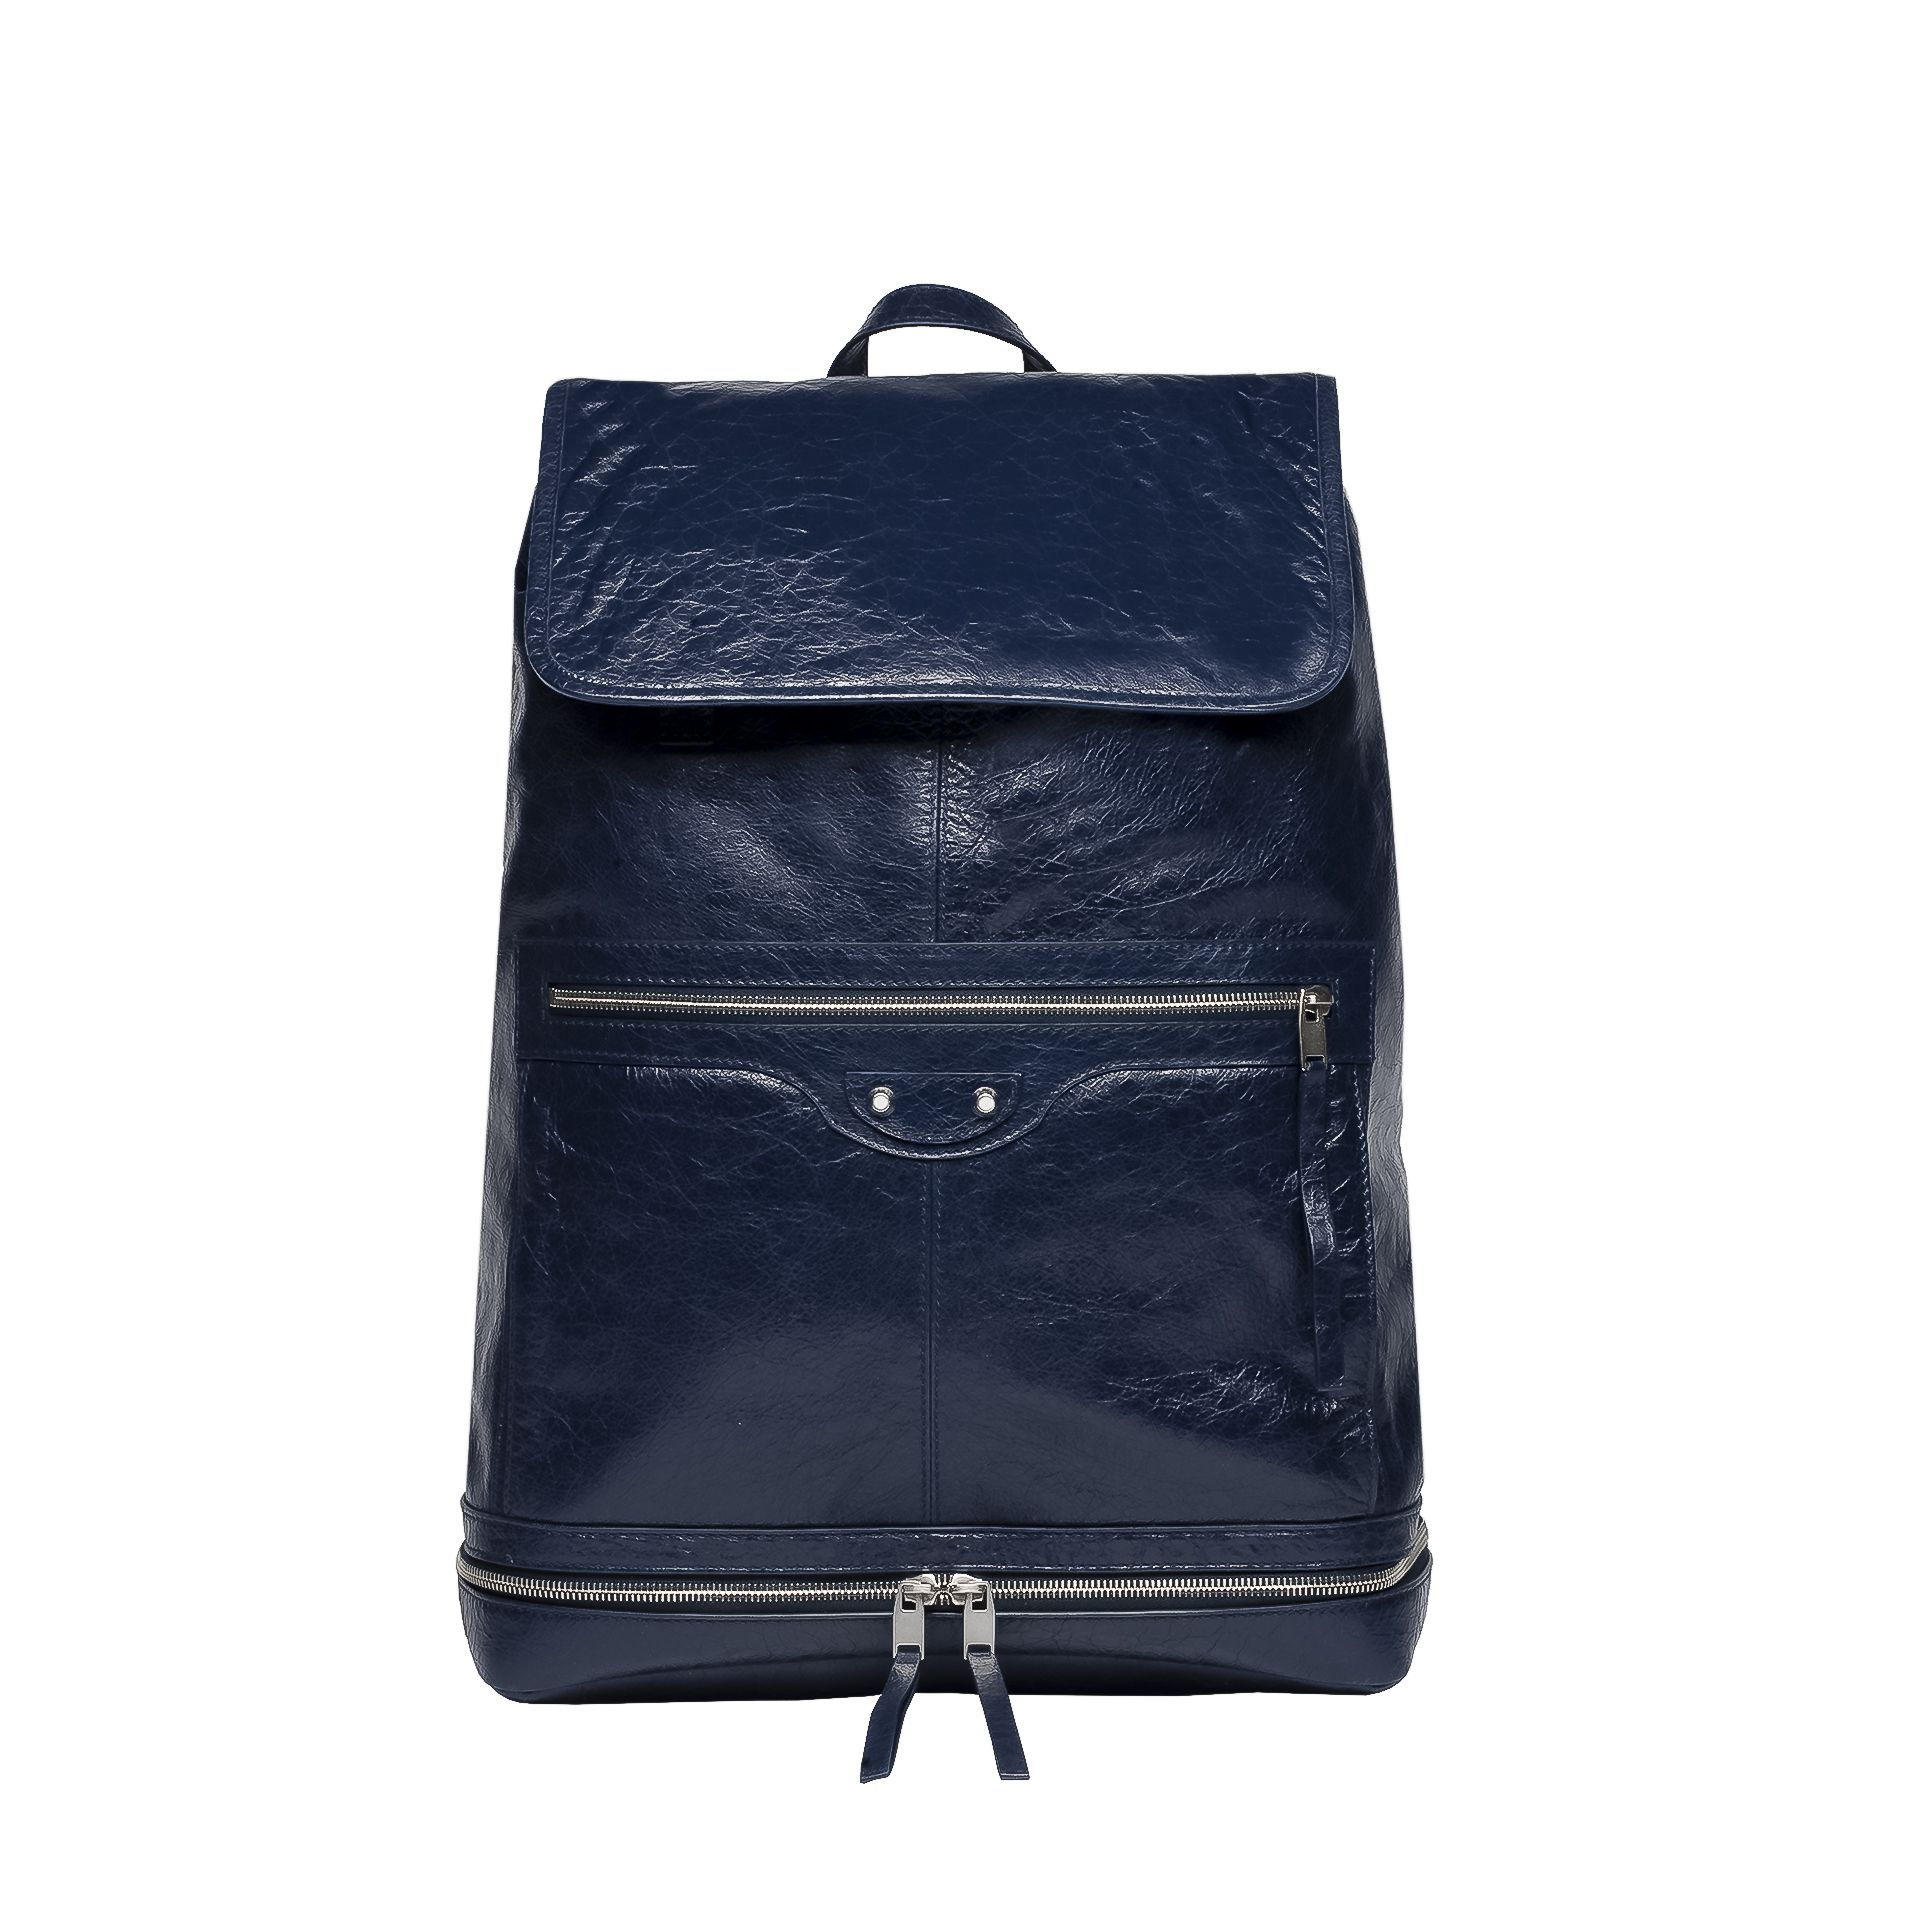 BALENCIAGA Balenciaga Traveller Backpack U f